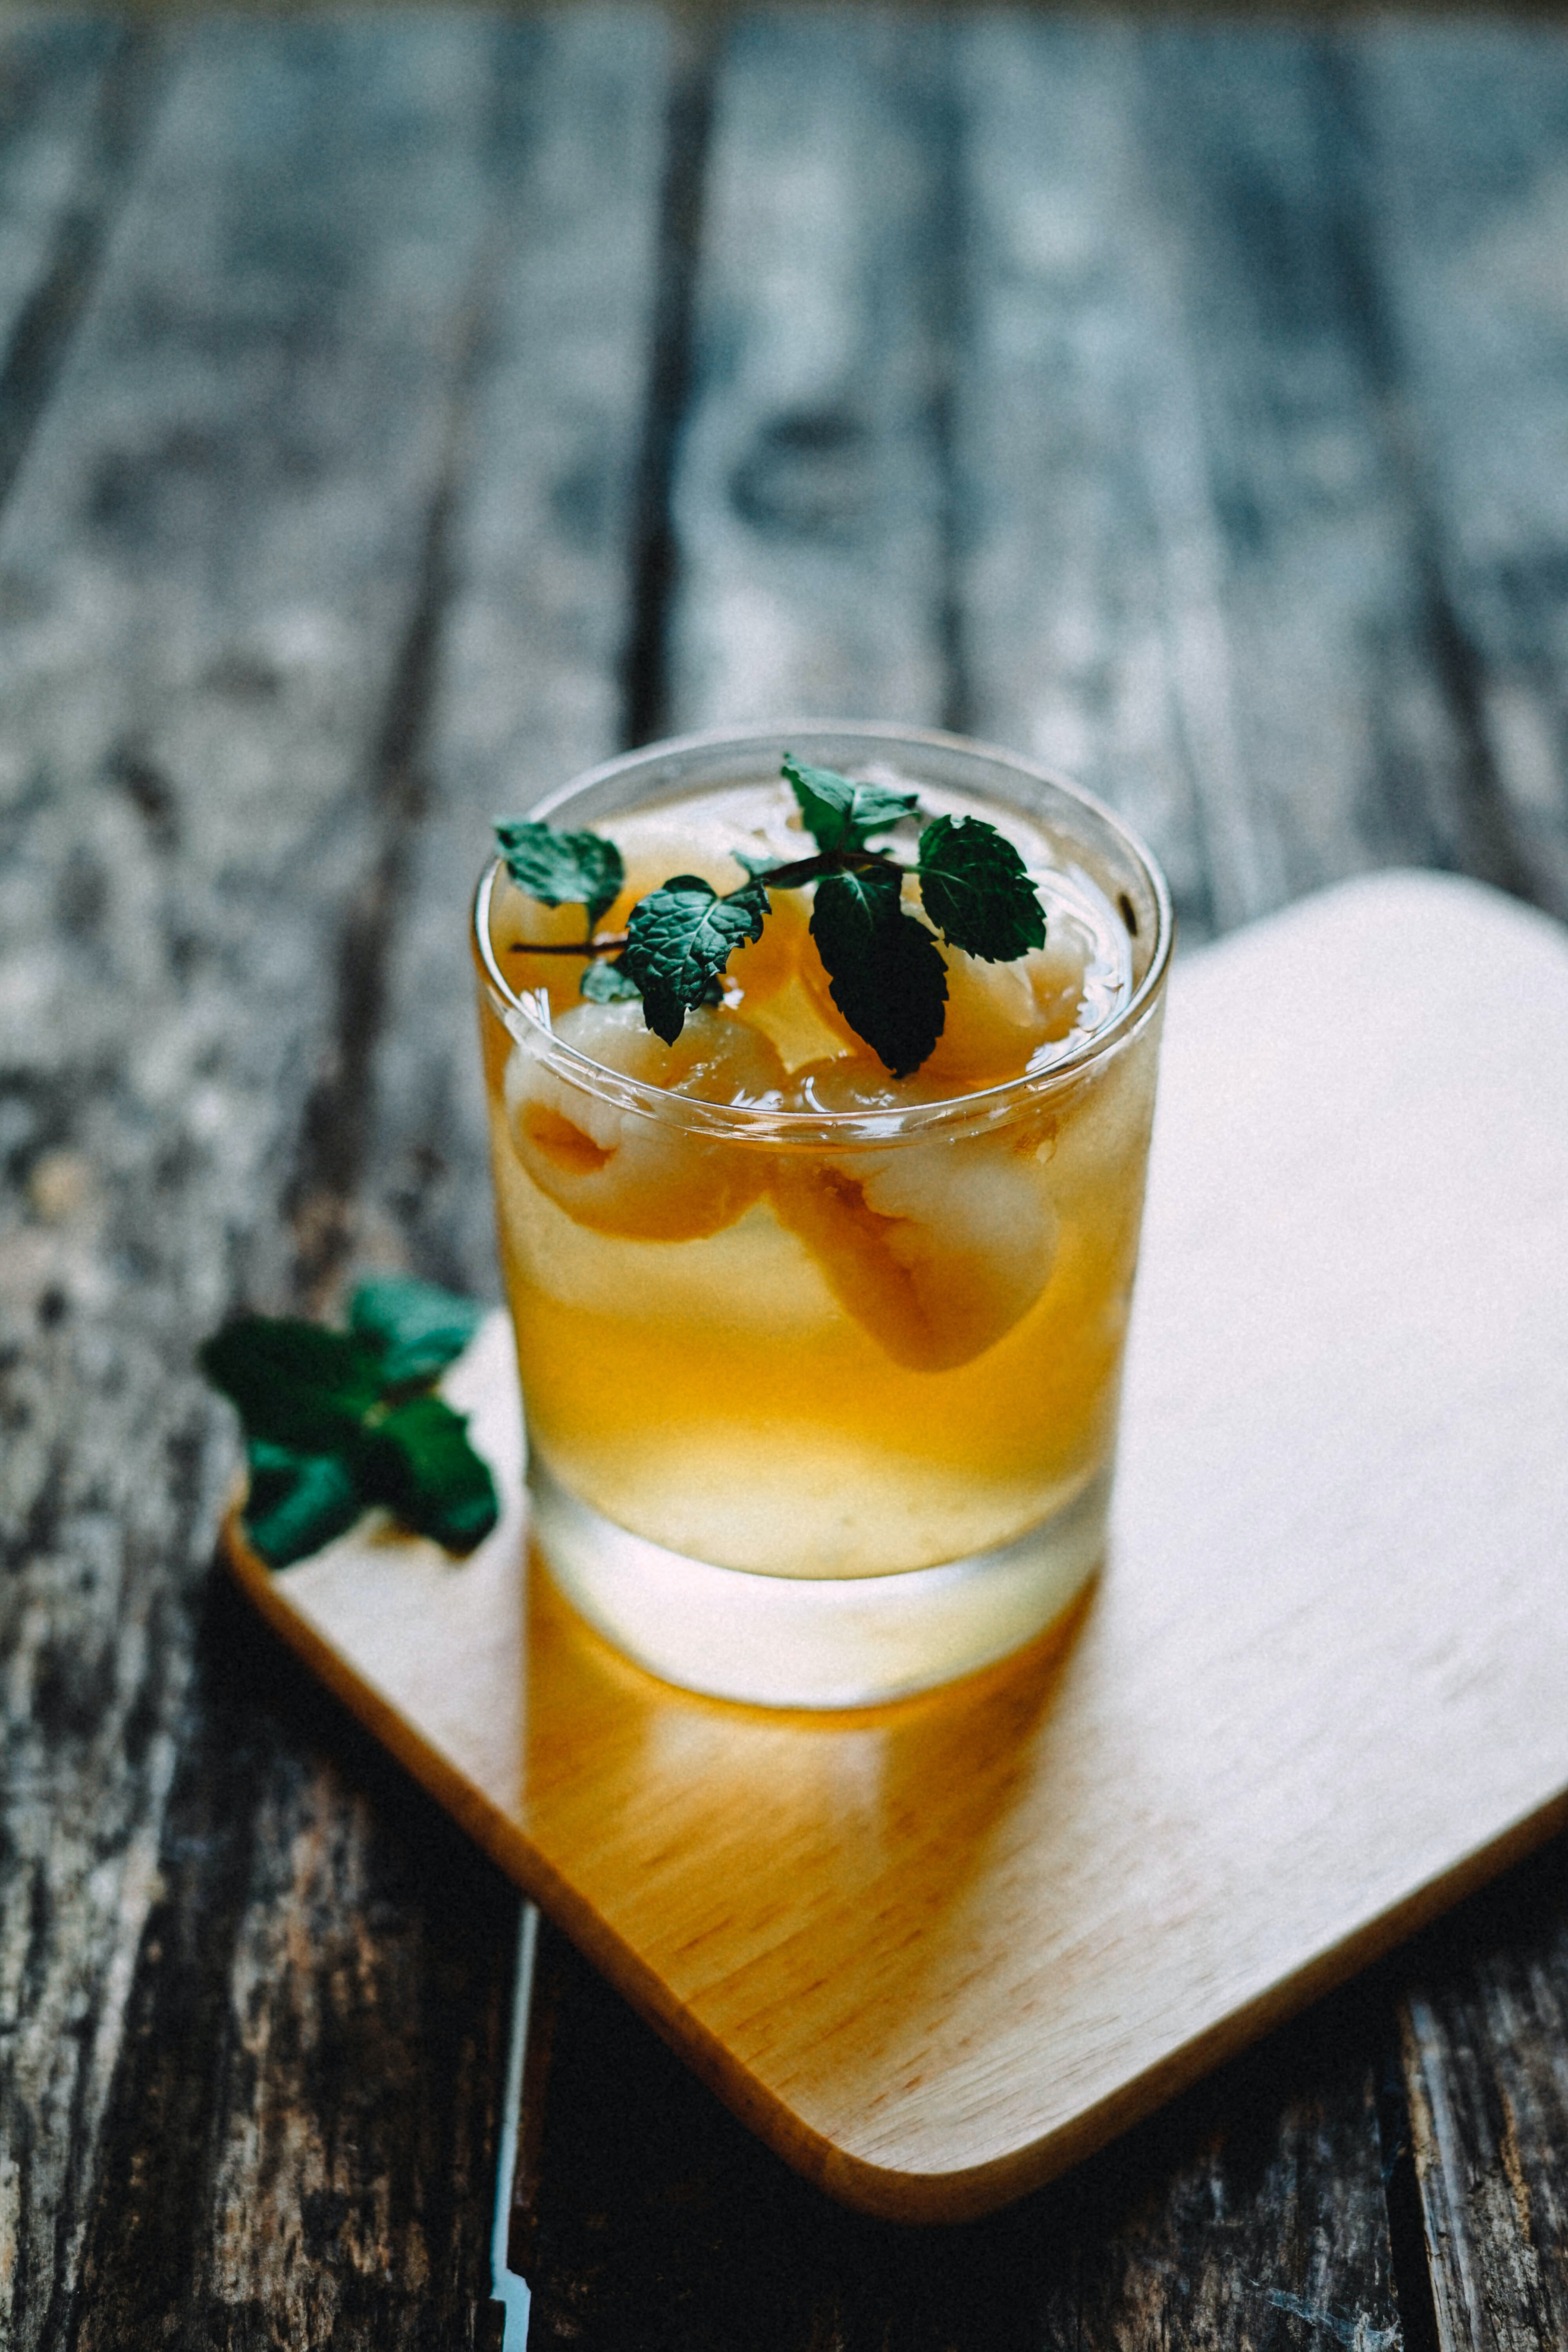 8 Ice Tea Cocktail Recipes to Cool You Down This Summer